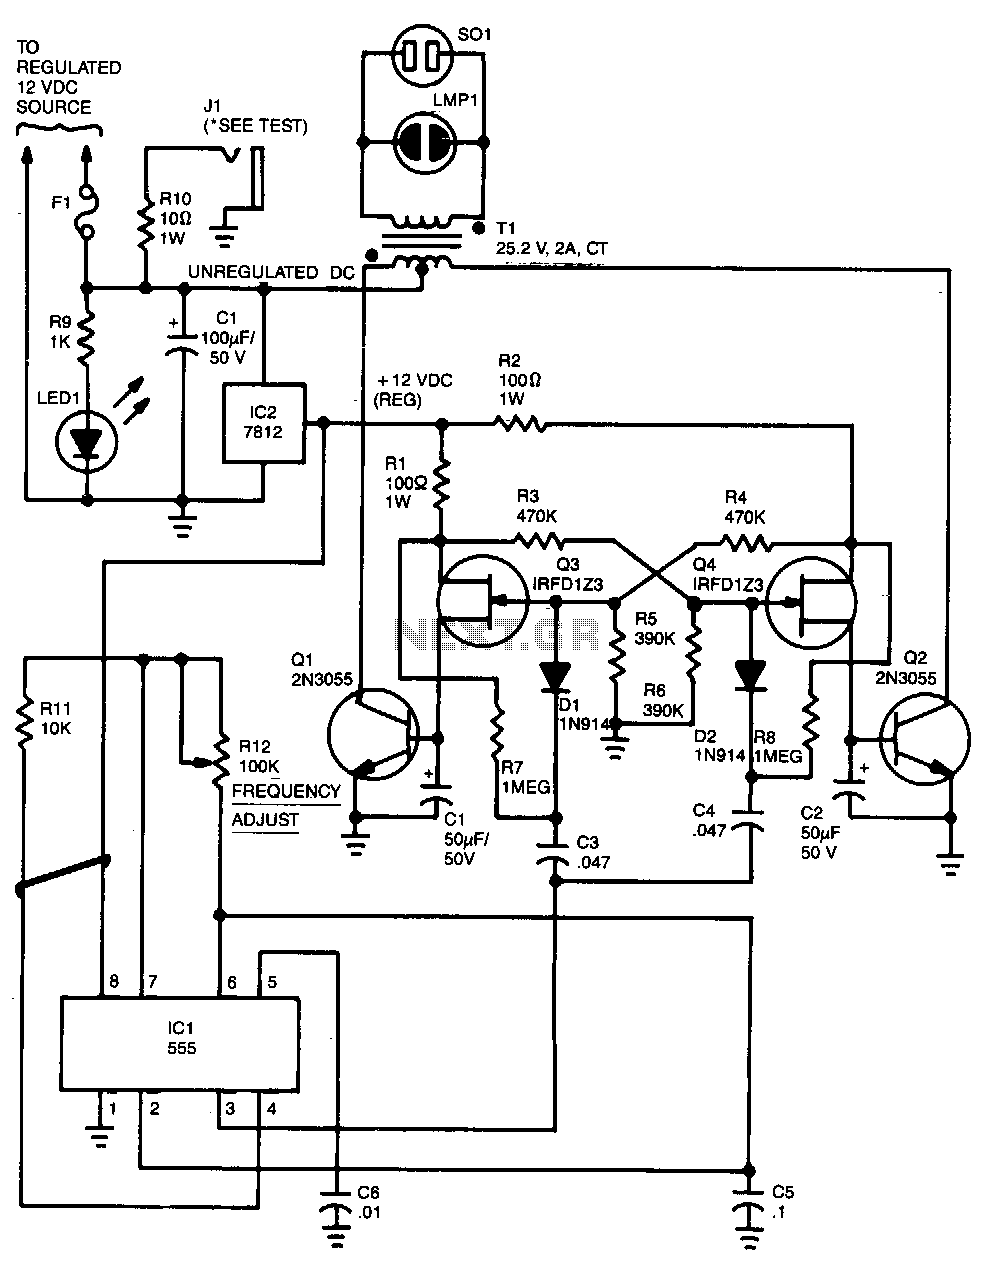 60Hz-power-inverter - schematic